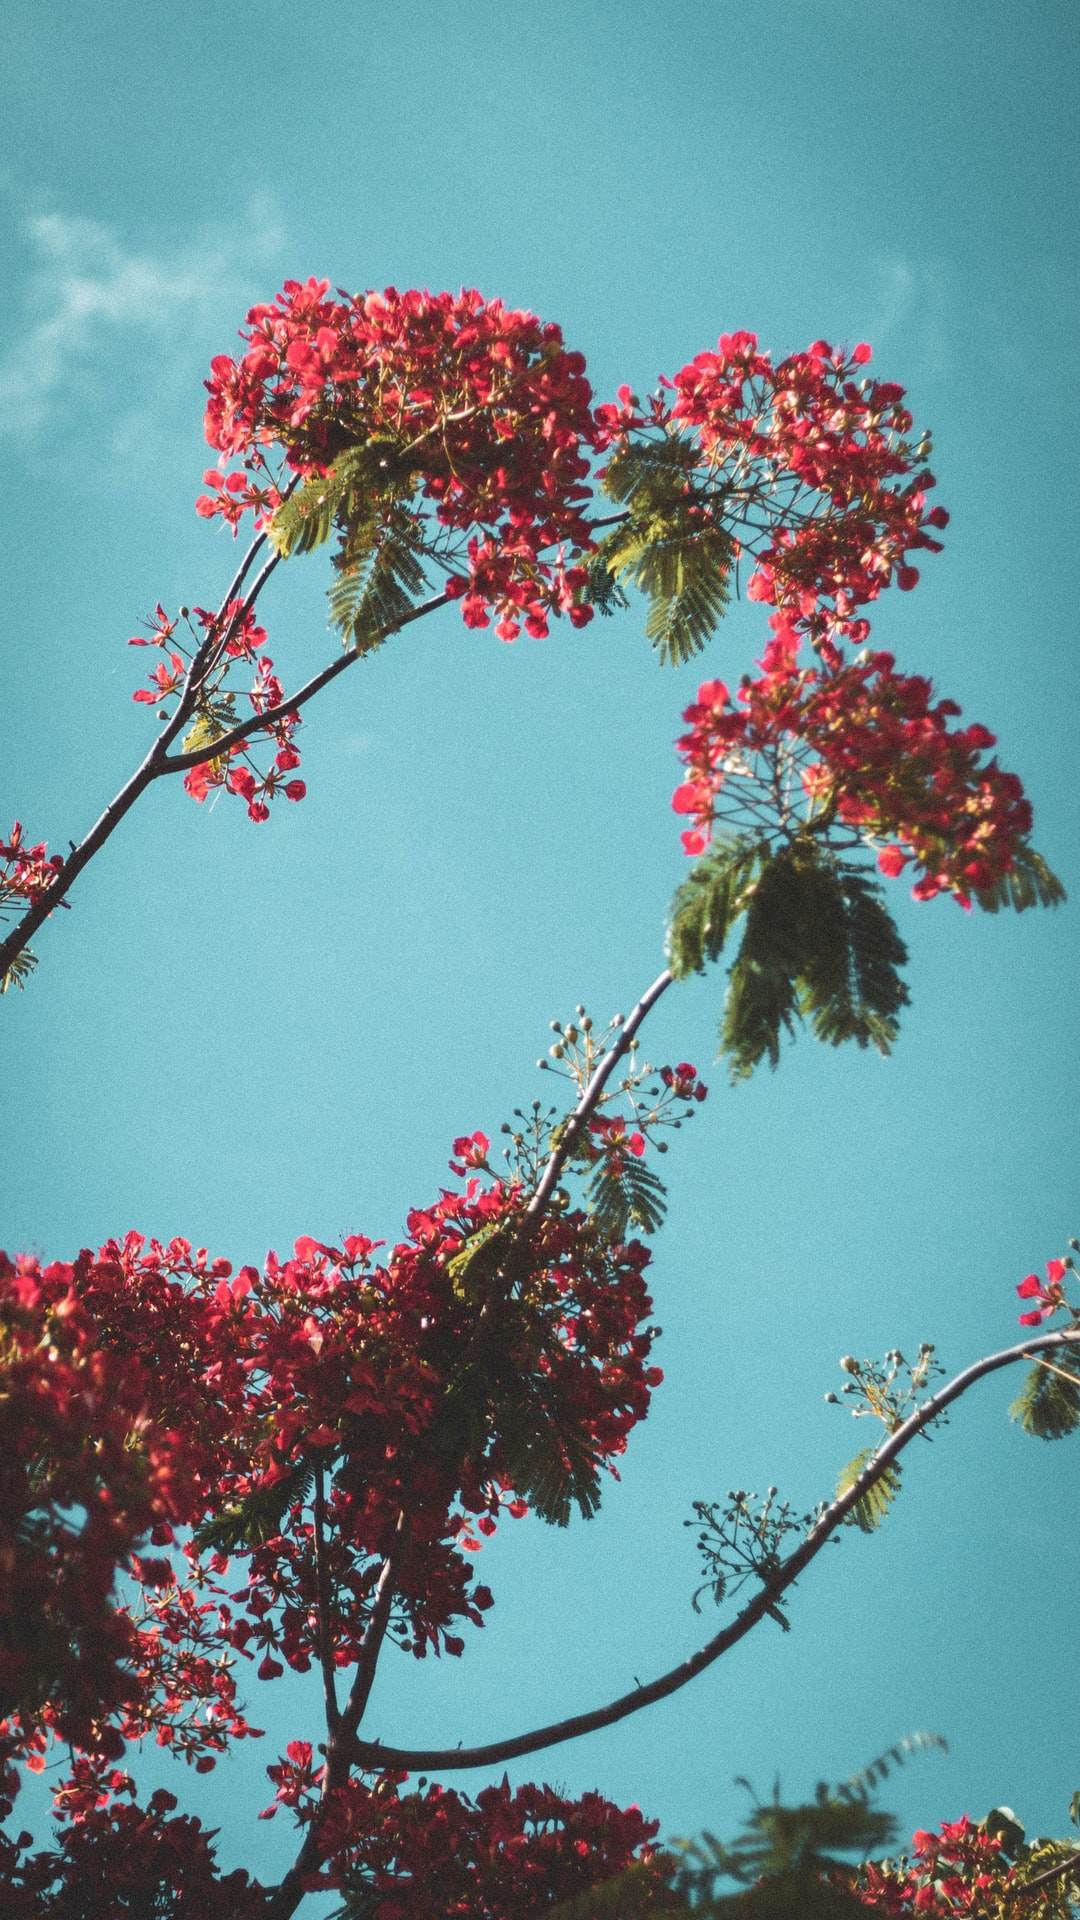 Red flowers on blue sky